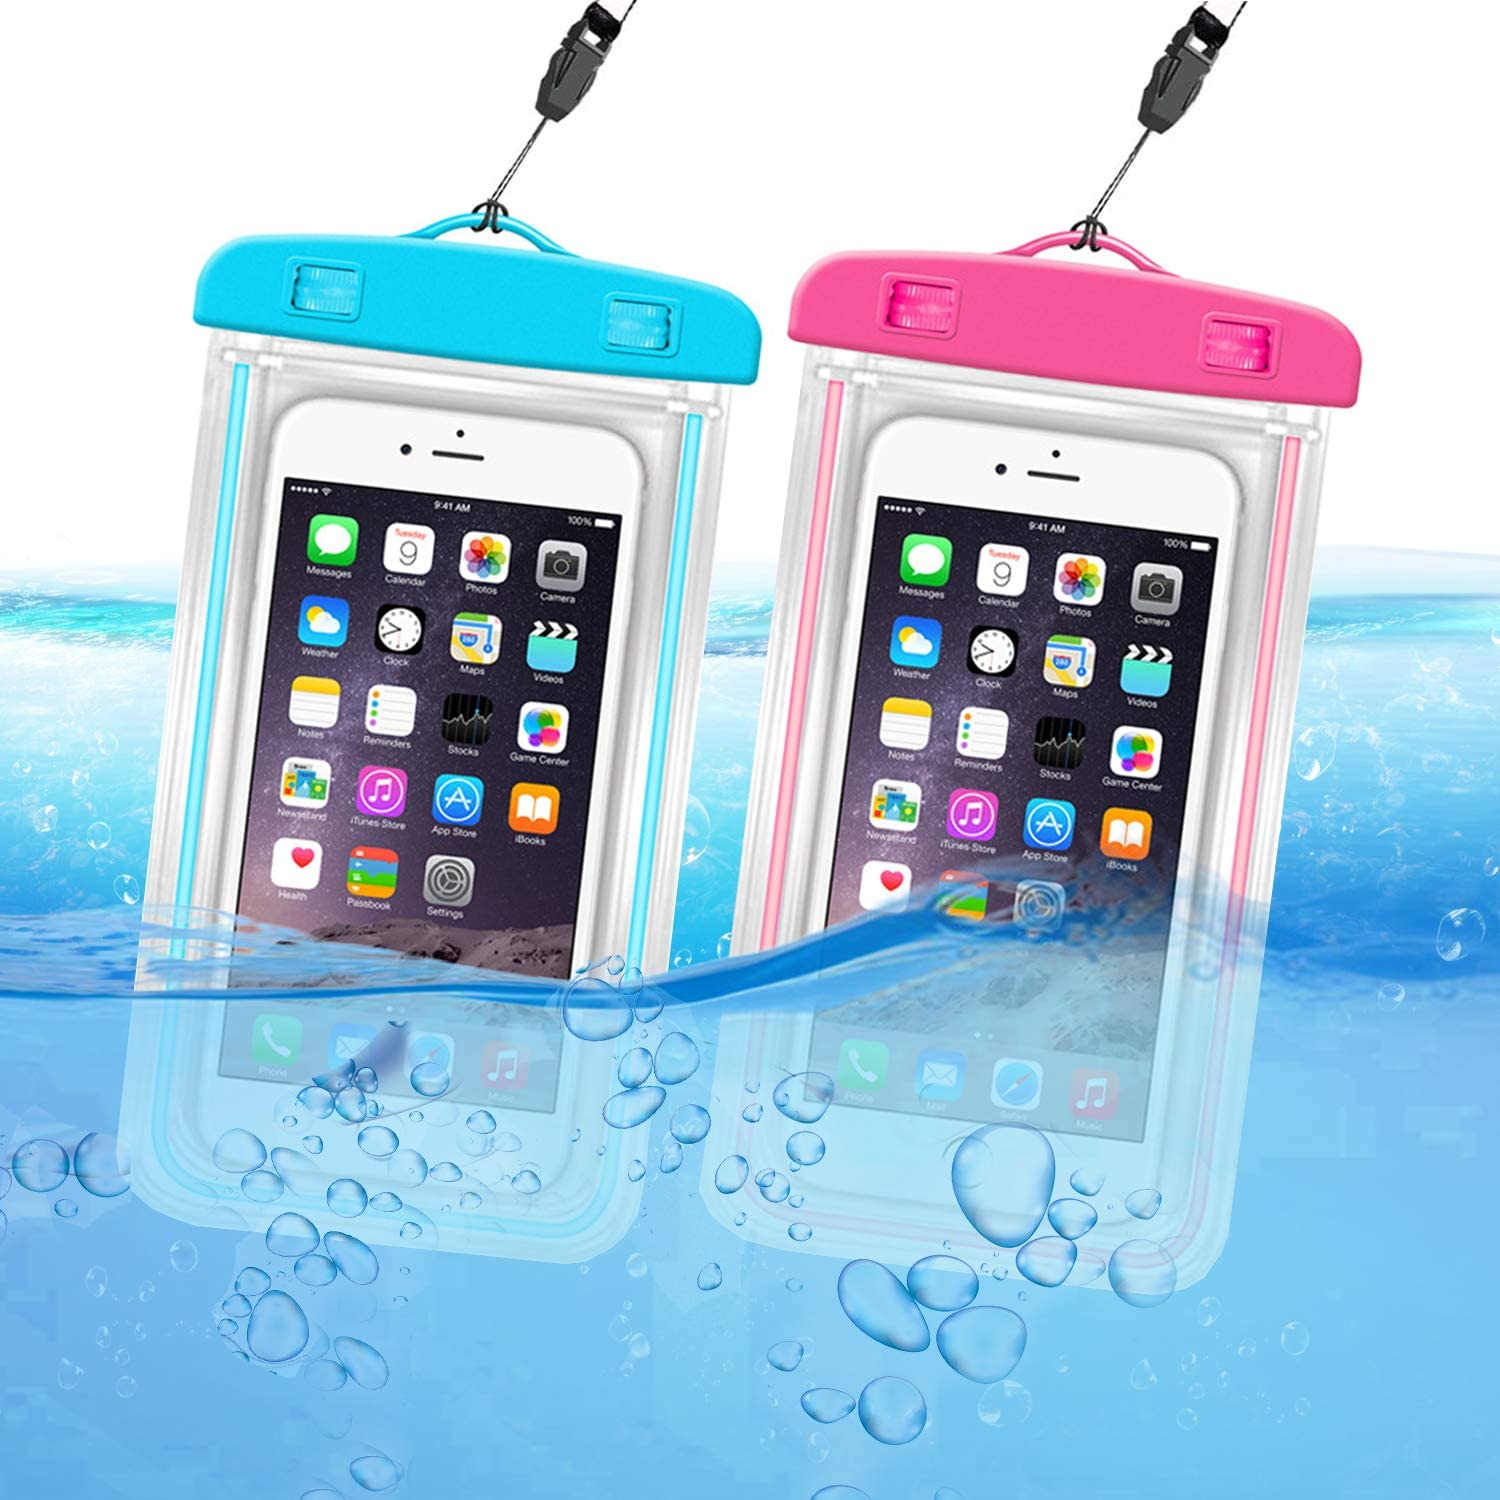 ORIbox Waterproof Pouch Phone Dry Bag with Luminous Ornament Case for iPhone 12 11 Pro Max XS Max XR X 8 7 6S Plus SE 2020 12 mini Galaxy Pixel, Blue & Rose red(2 Packs)